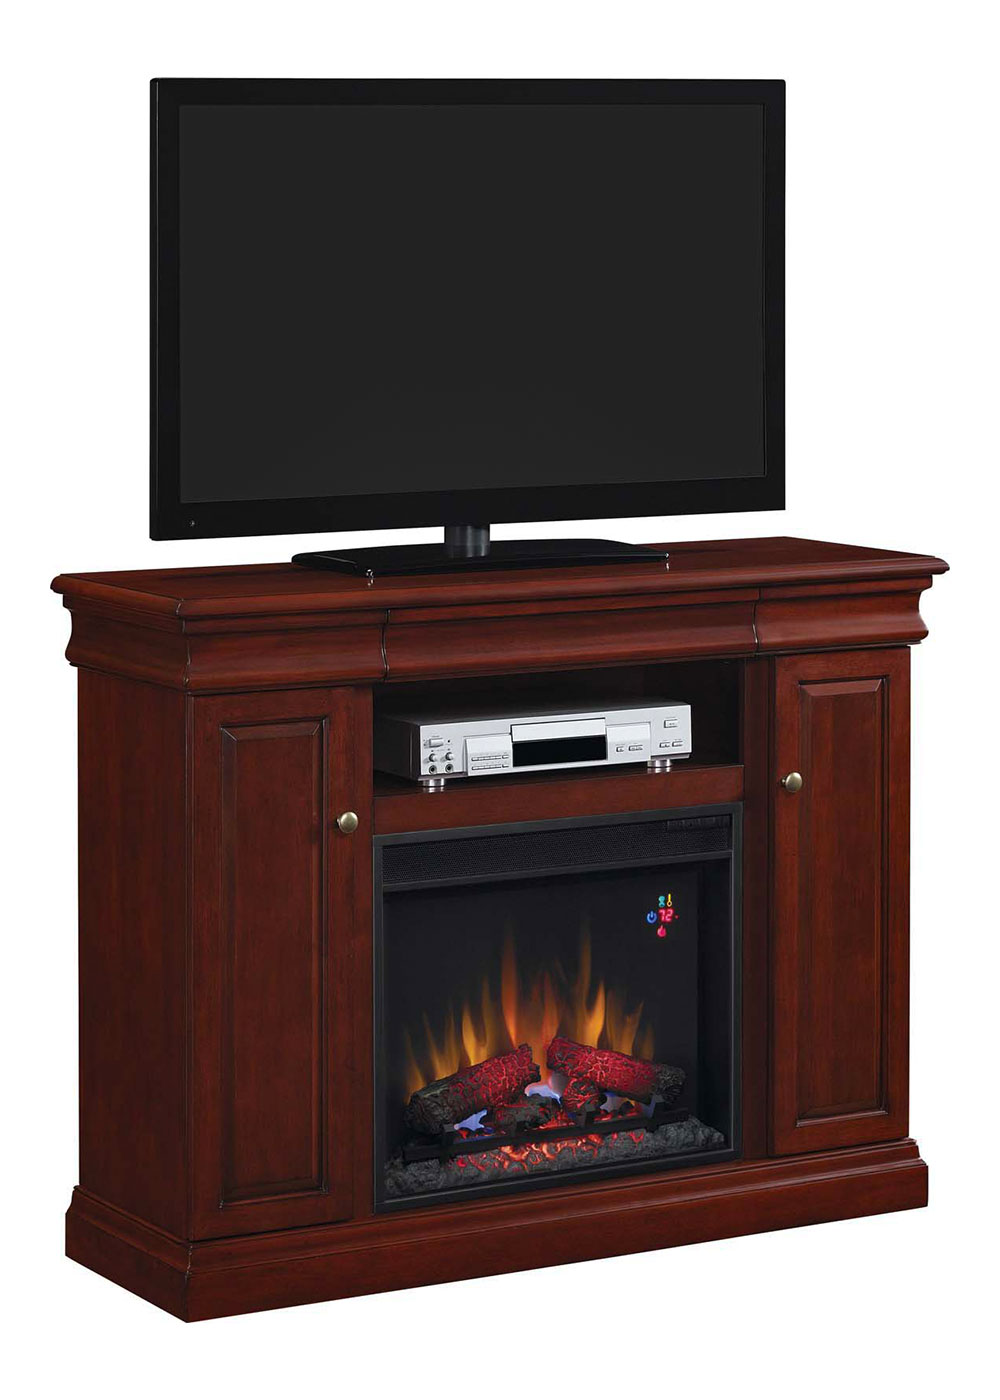 Louie Electric Fireplace Media Console In Cherry 23mm9643 X331